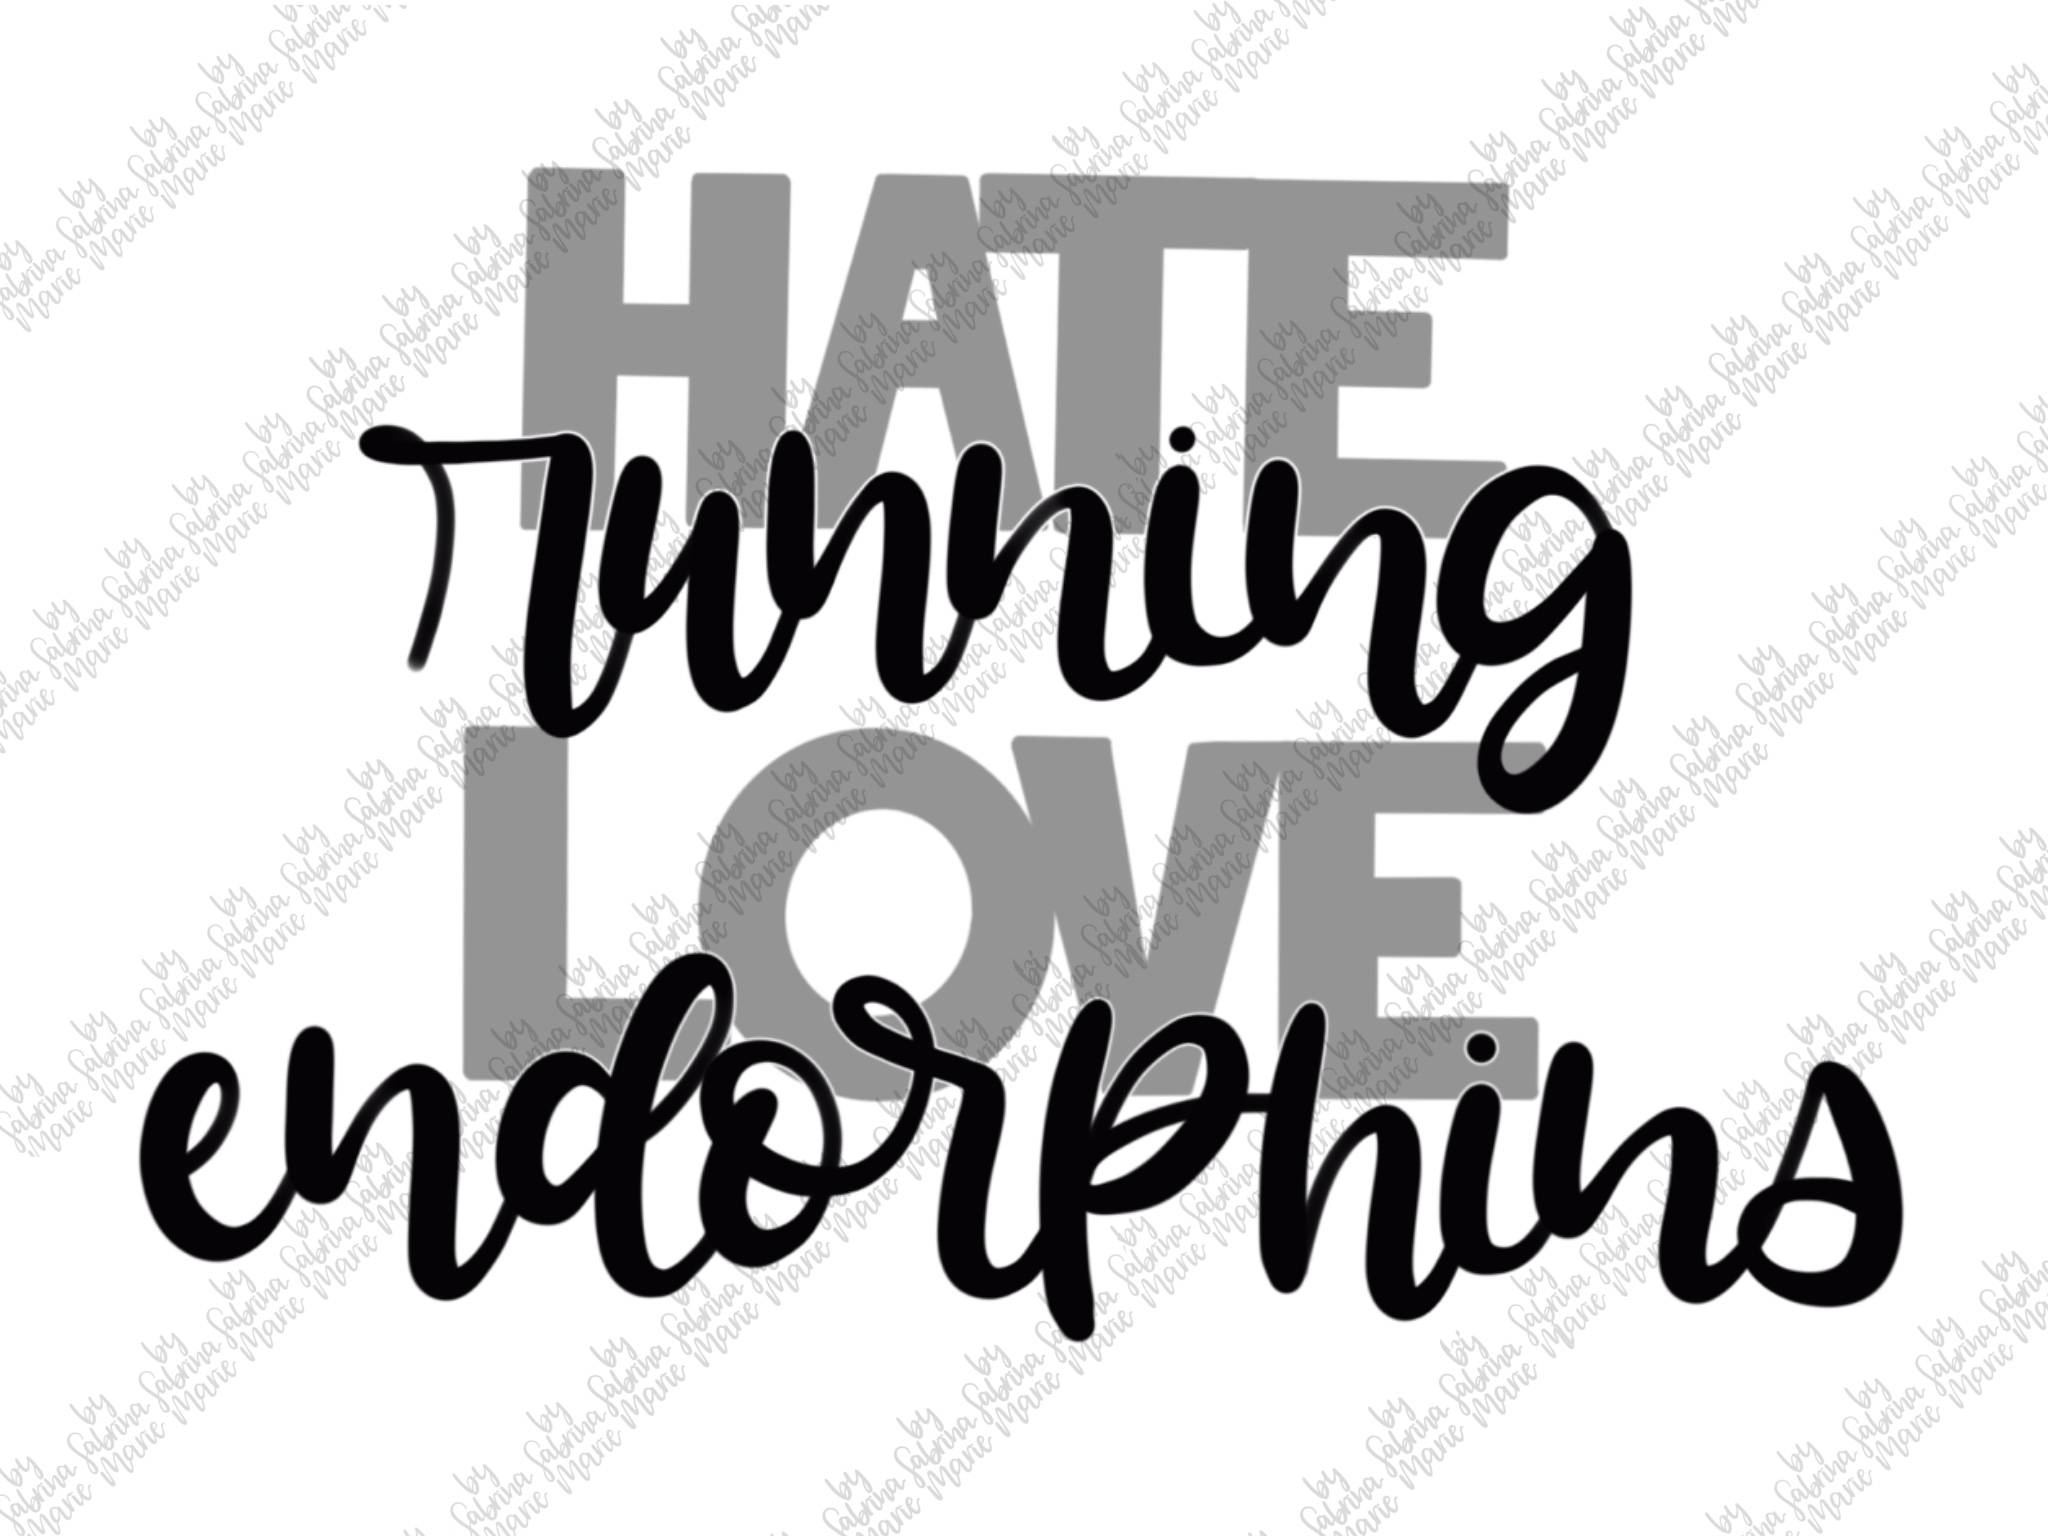 Hate Running Love Endorphins - Exercise Quote - SVG/PNG example image 2